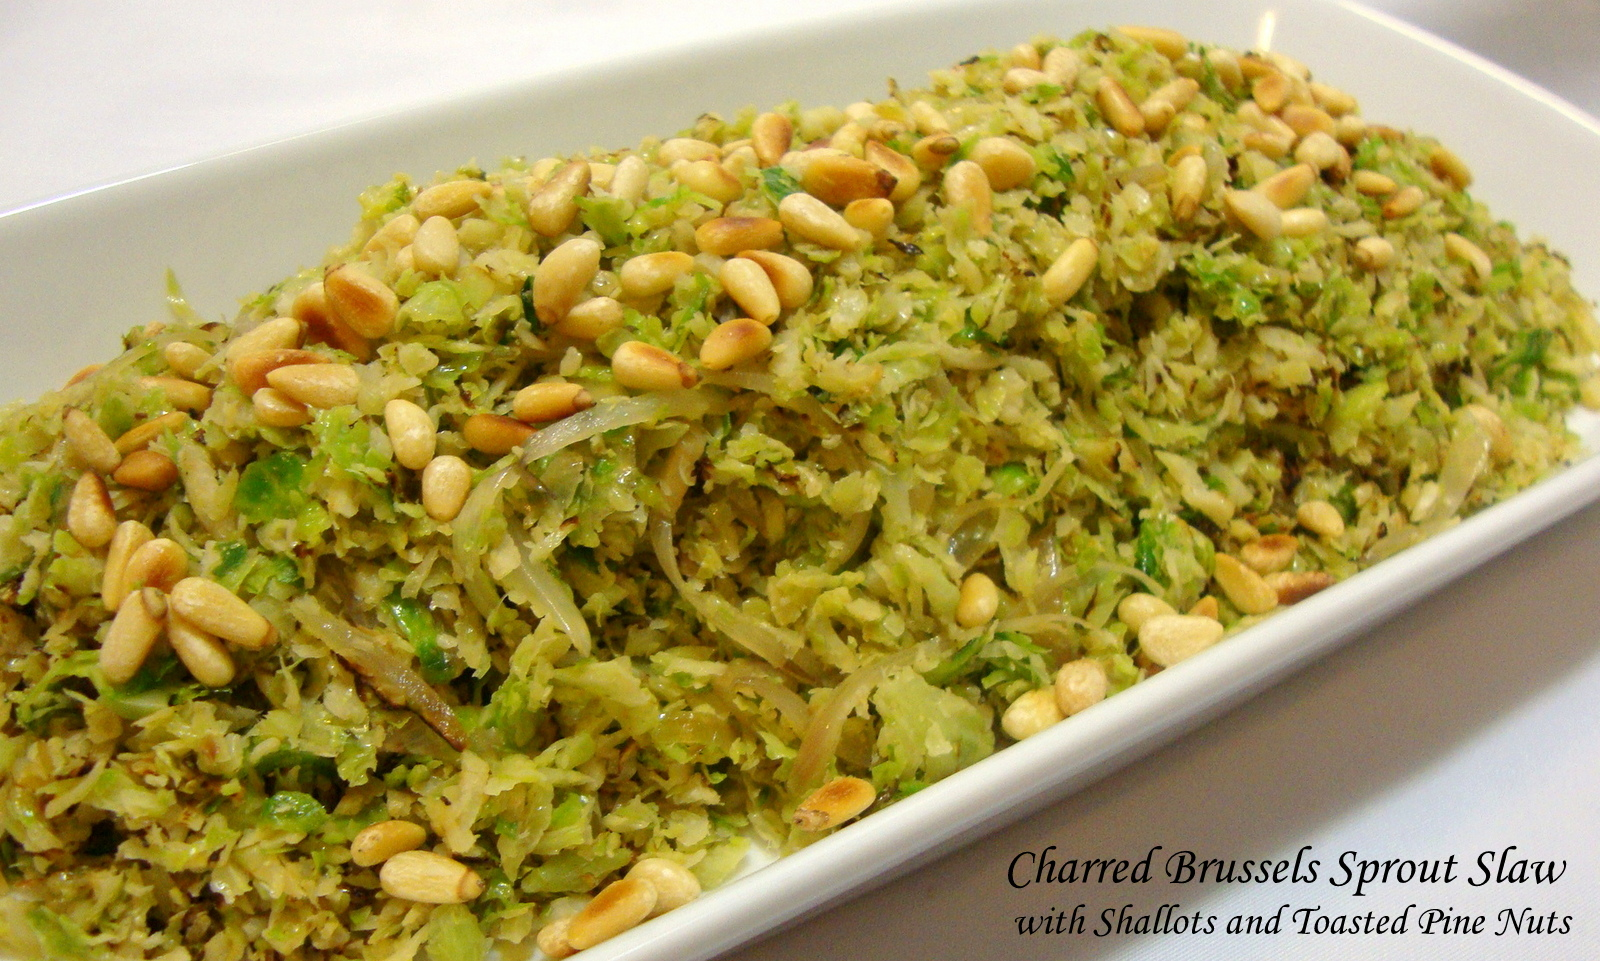 Charred Brussels Sprout Slaw with Shallots and Toasted Pine Nuts